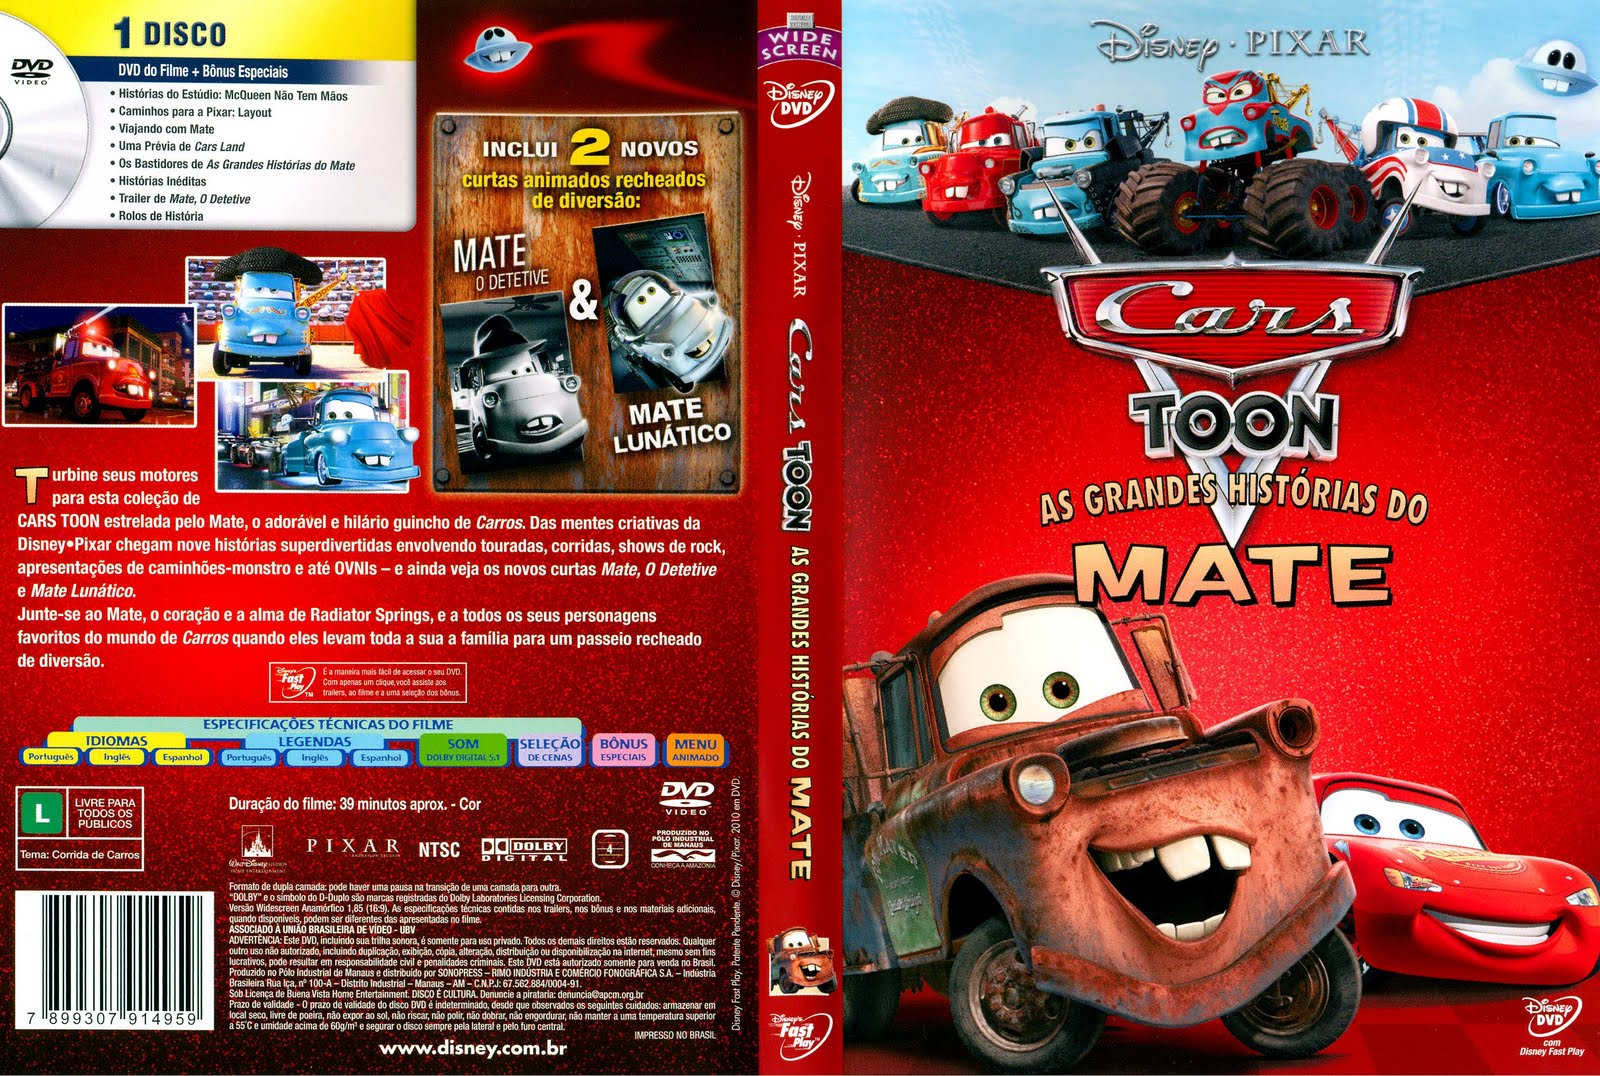 Cars Toon As Grandes Histórias Do Mate